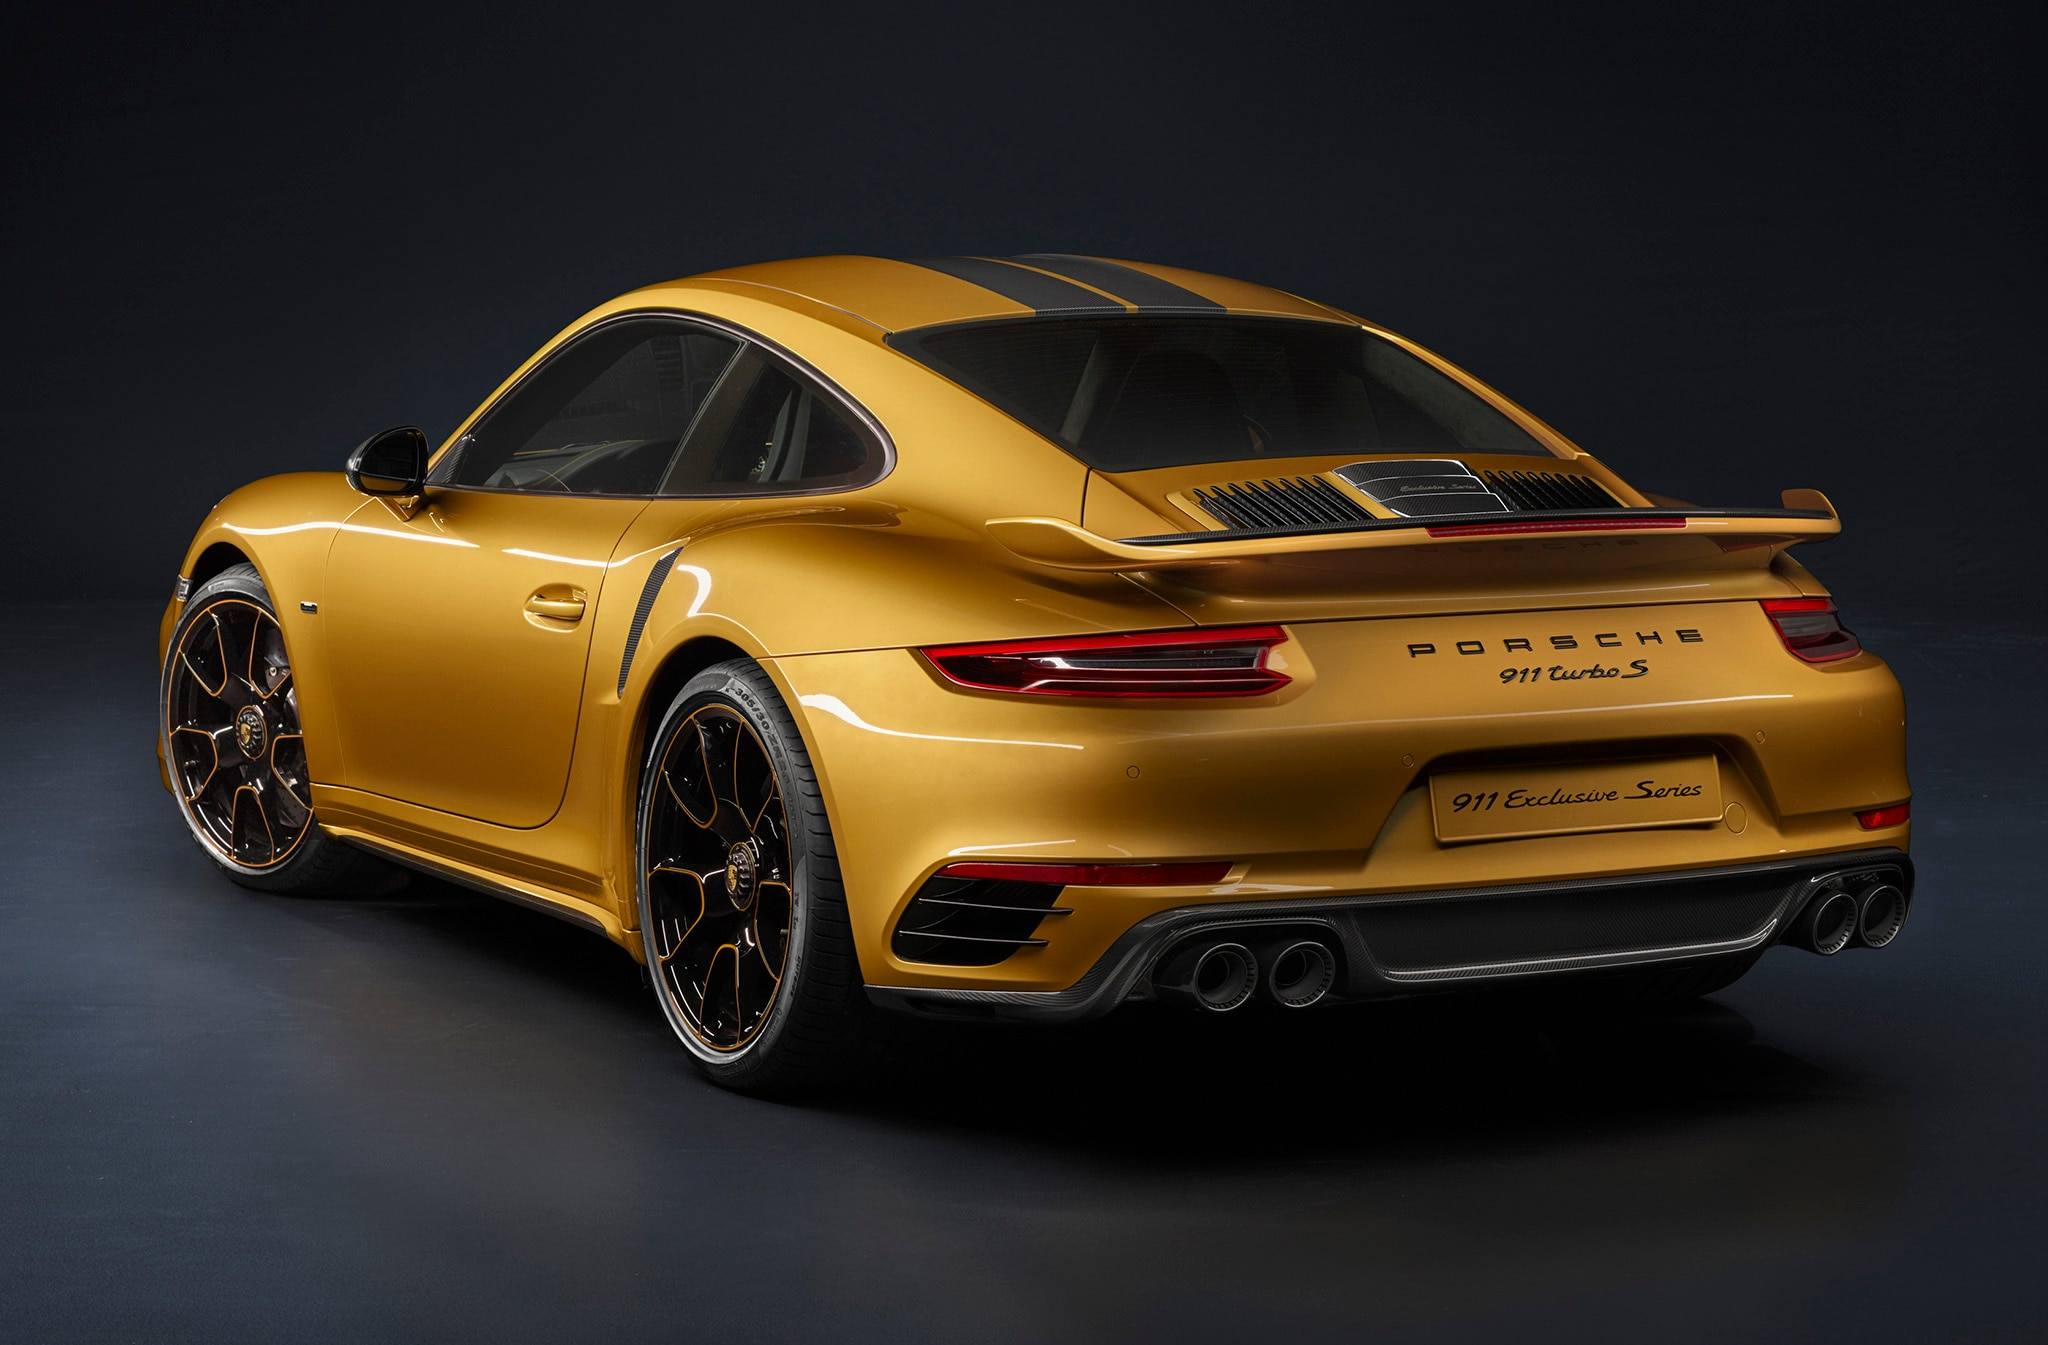 Porsche 911 Turbo S Exclusive Series Unveiled With An Additional 27 HP